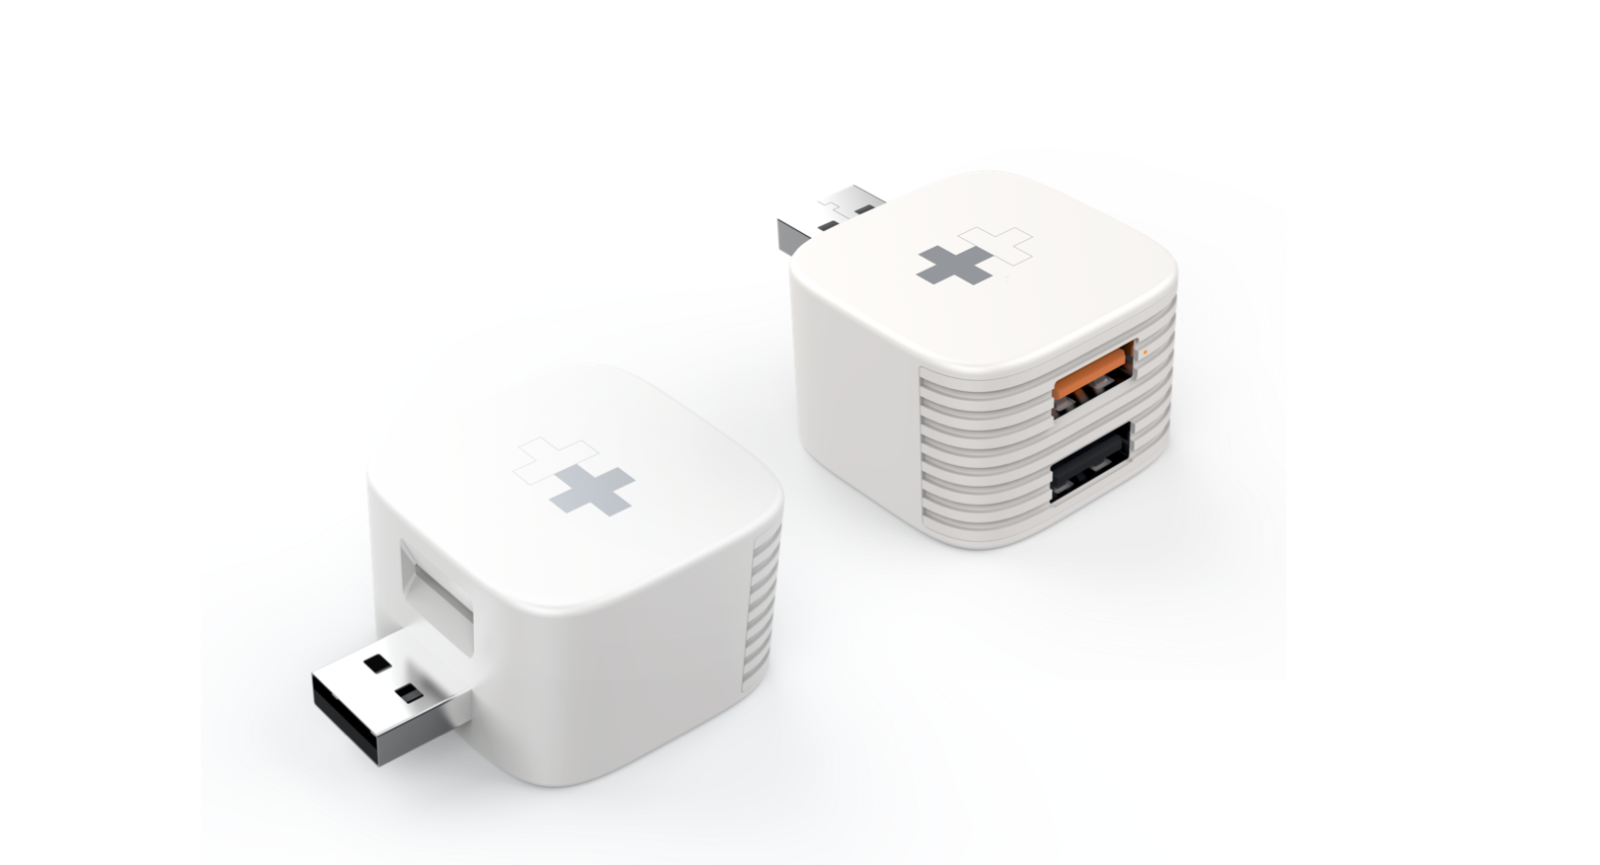 HyperCube backs up your iPhone or iPad to microSD or USB storage while you charge